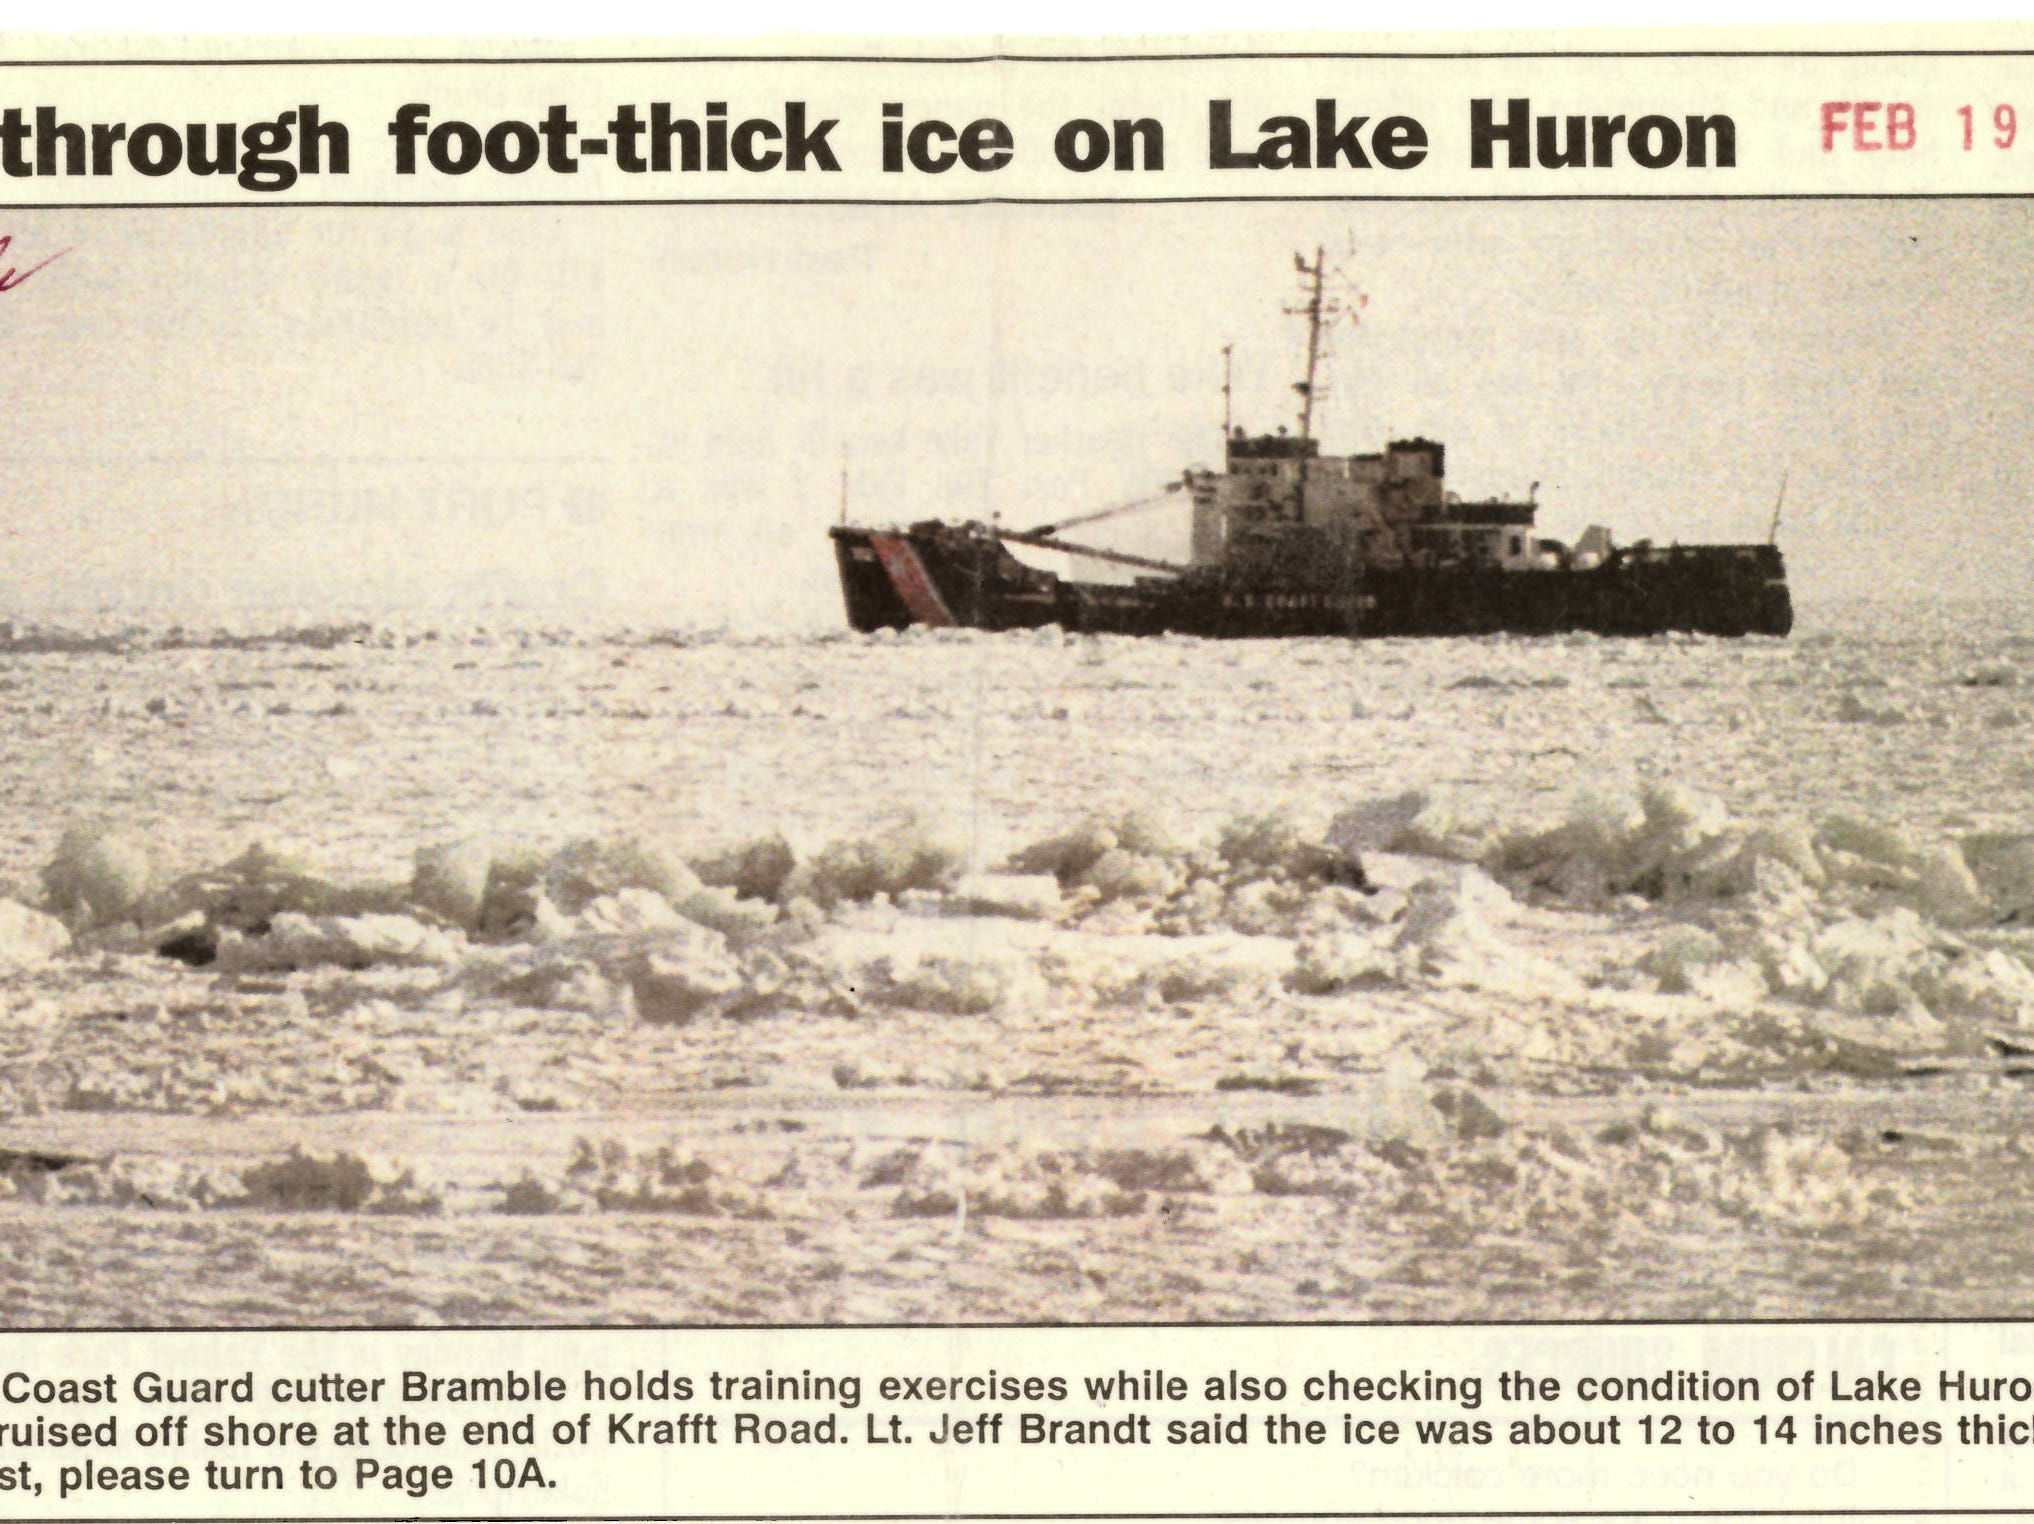 A newspaper clipping from February 1993 shows the USCGC Bramble holding a training exercise while checking the condition of the ice on Lake Huron.